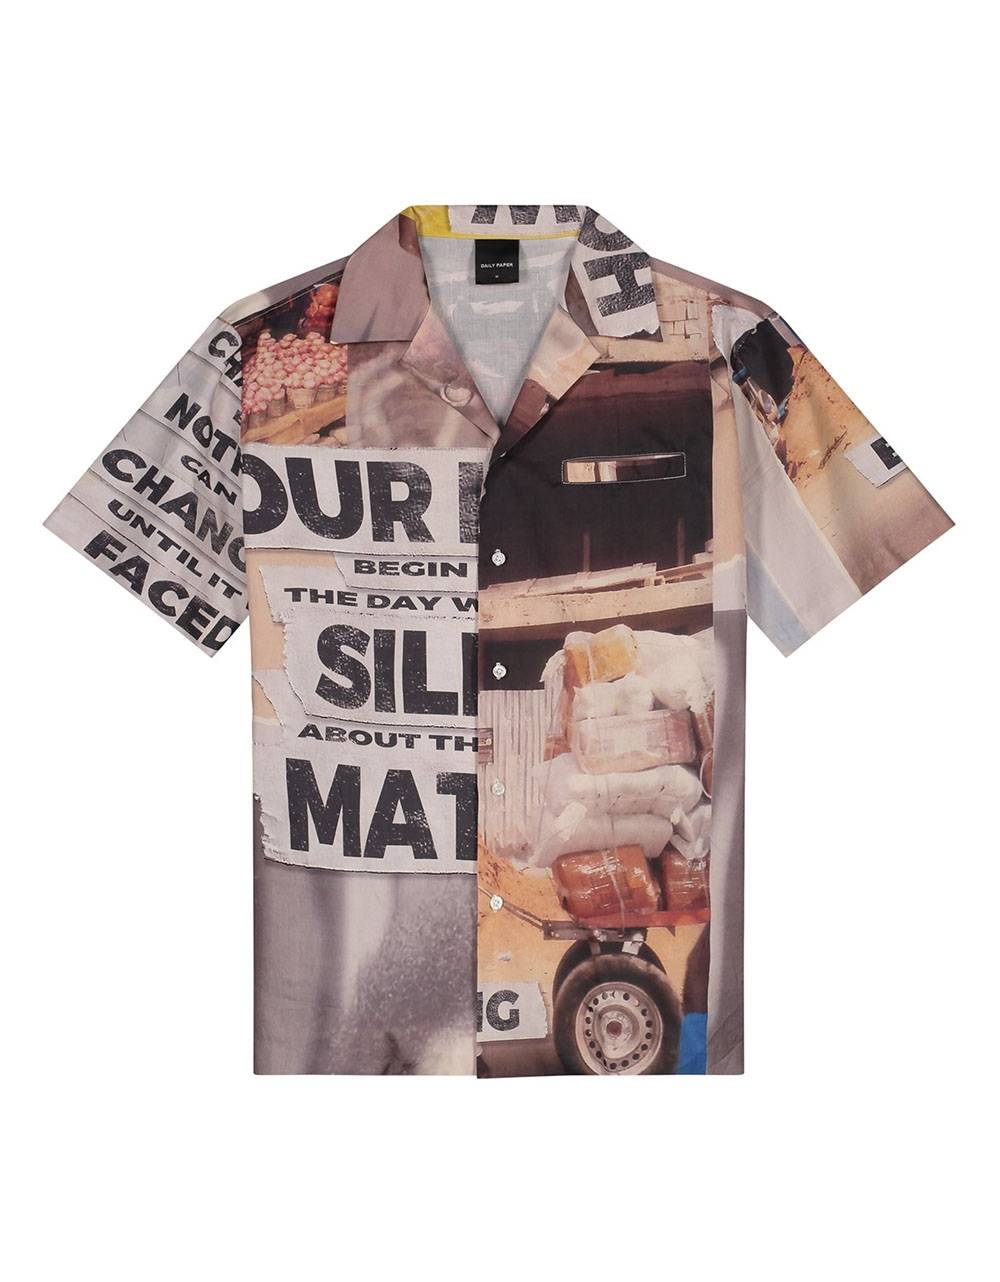 Daily Paper Kovan collage shirt - collage allover DAILY PAPER Shirt 127,05€